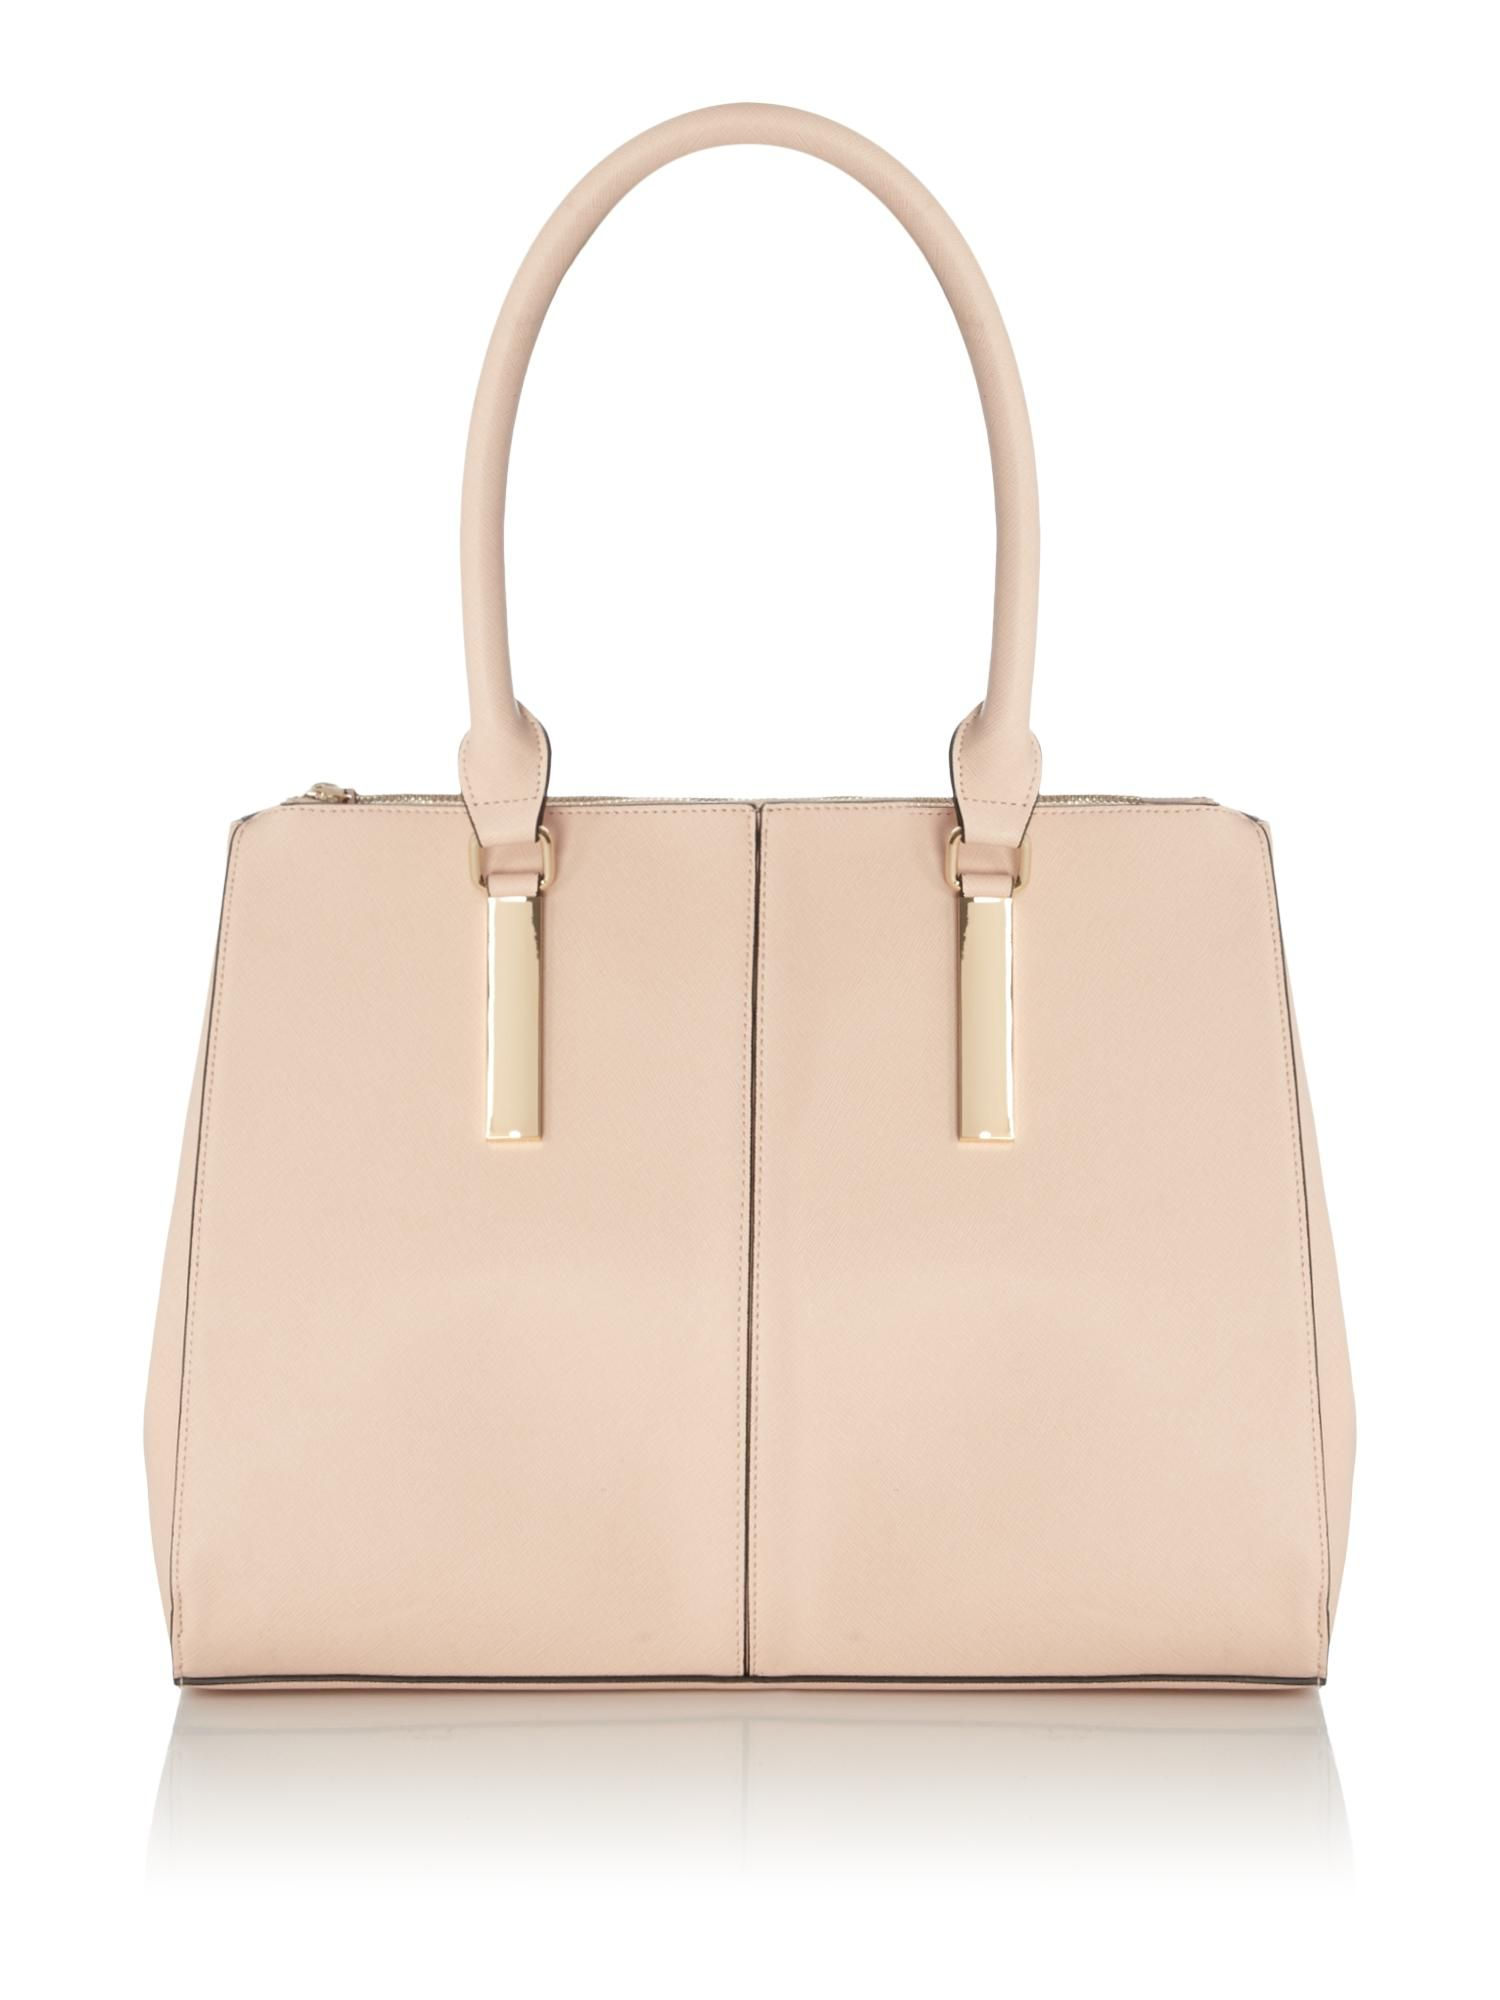 Your Linea Anita Tote Online Now At House Of Fraser Why Not And